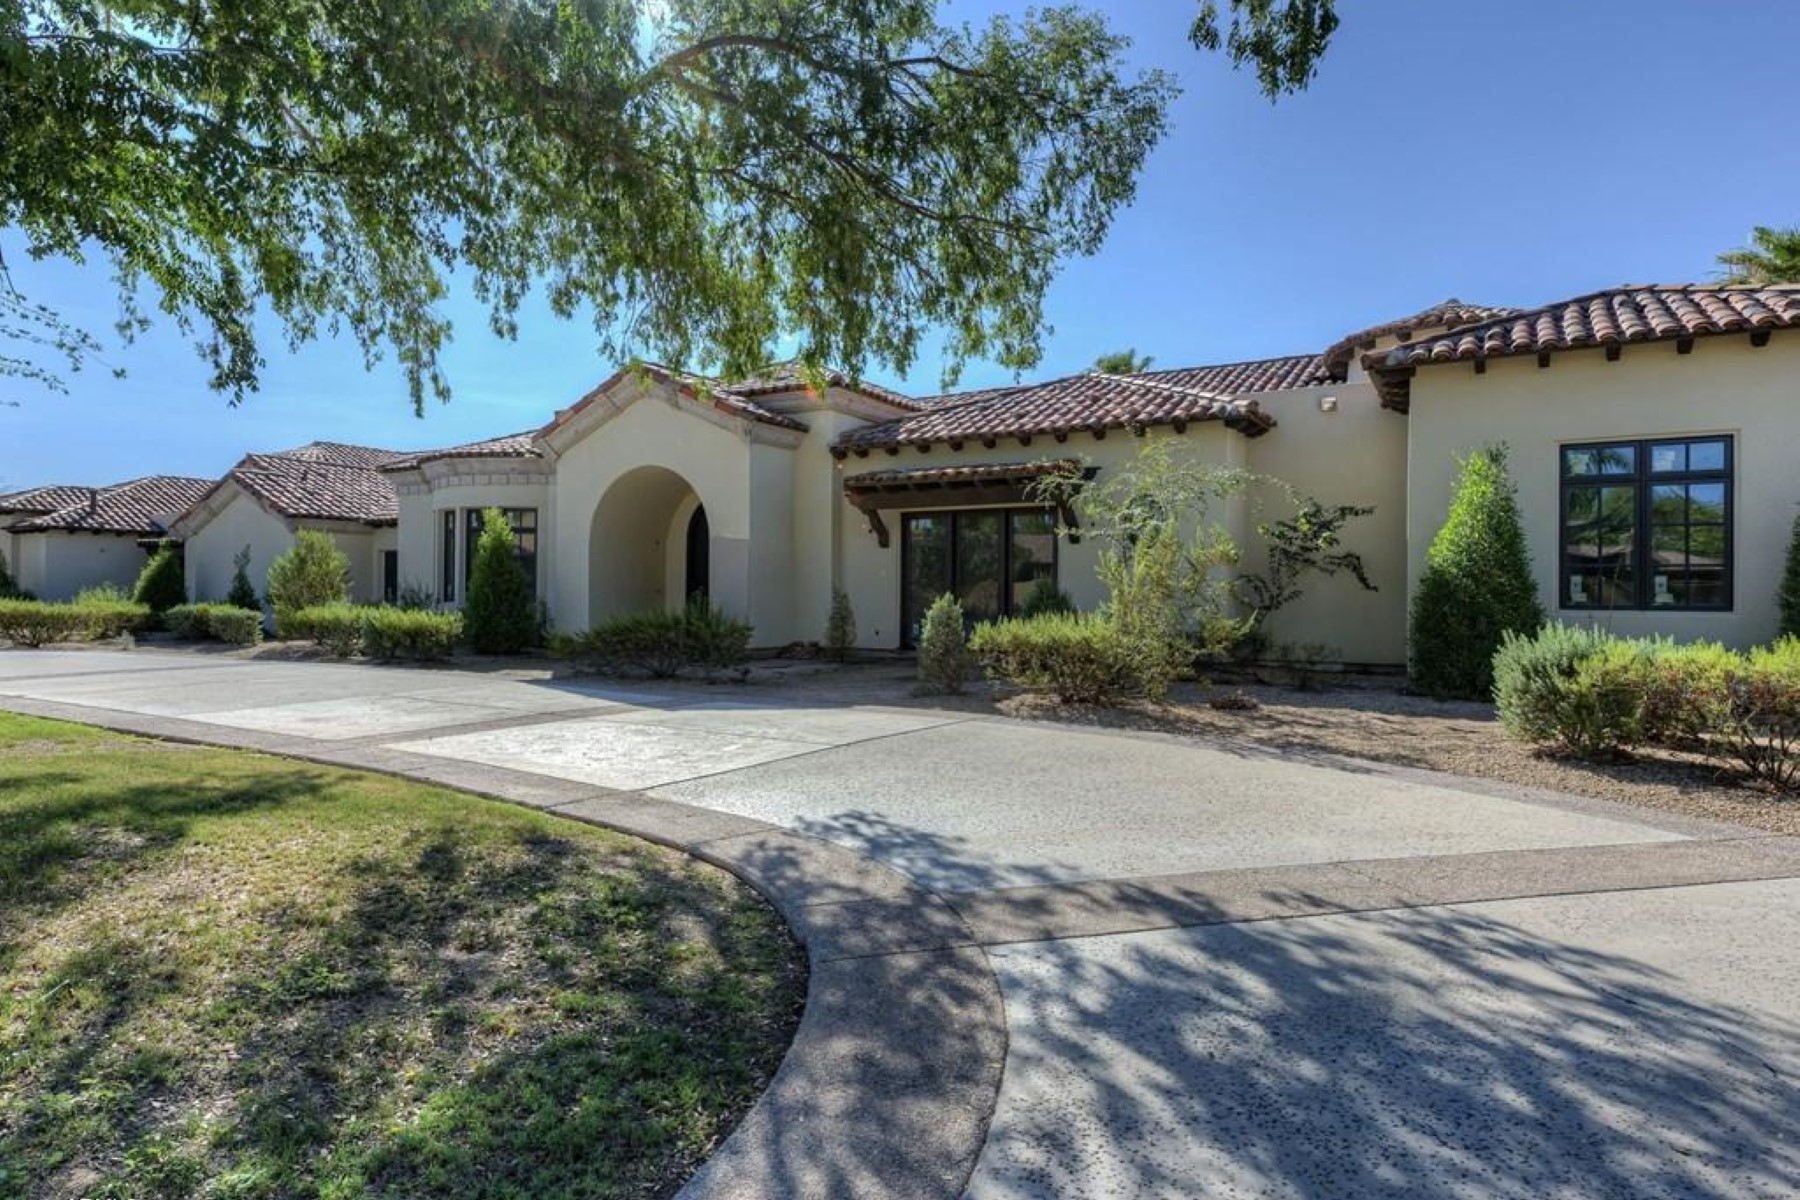 Moradia para Venda às Wonderufl estate sits on 2.5 acres with sweeping mountain views 6101 E Caballo Ln Paradise Valley, Arizona 85253 Estados Unidos